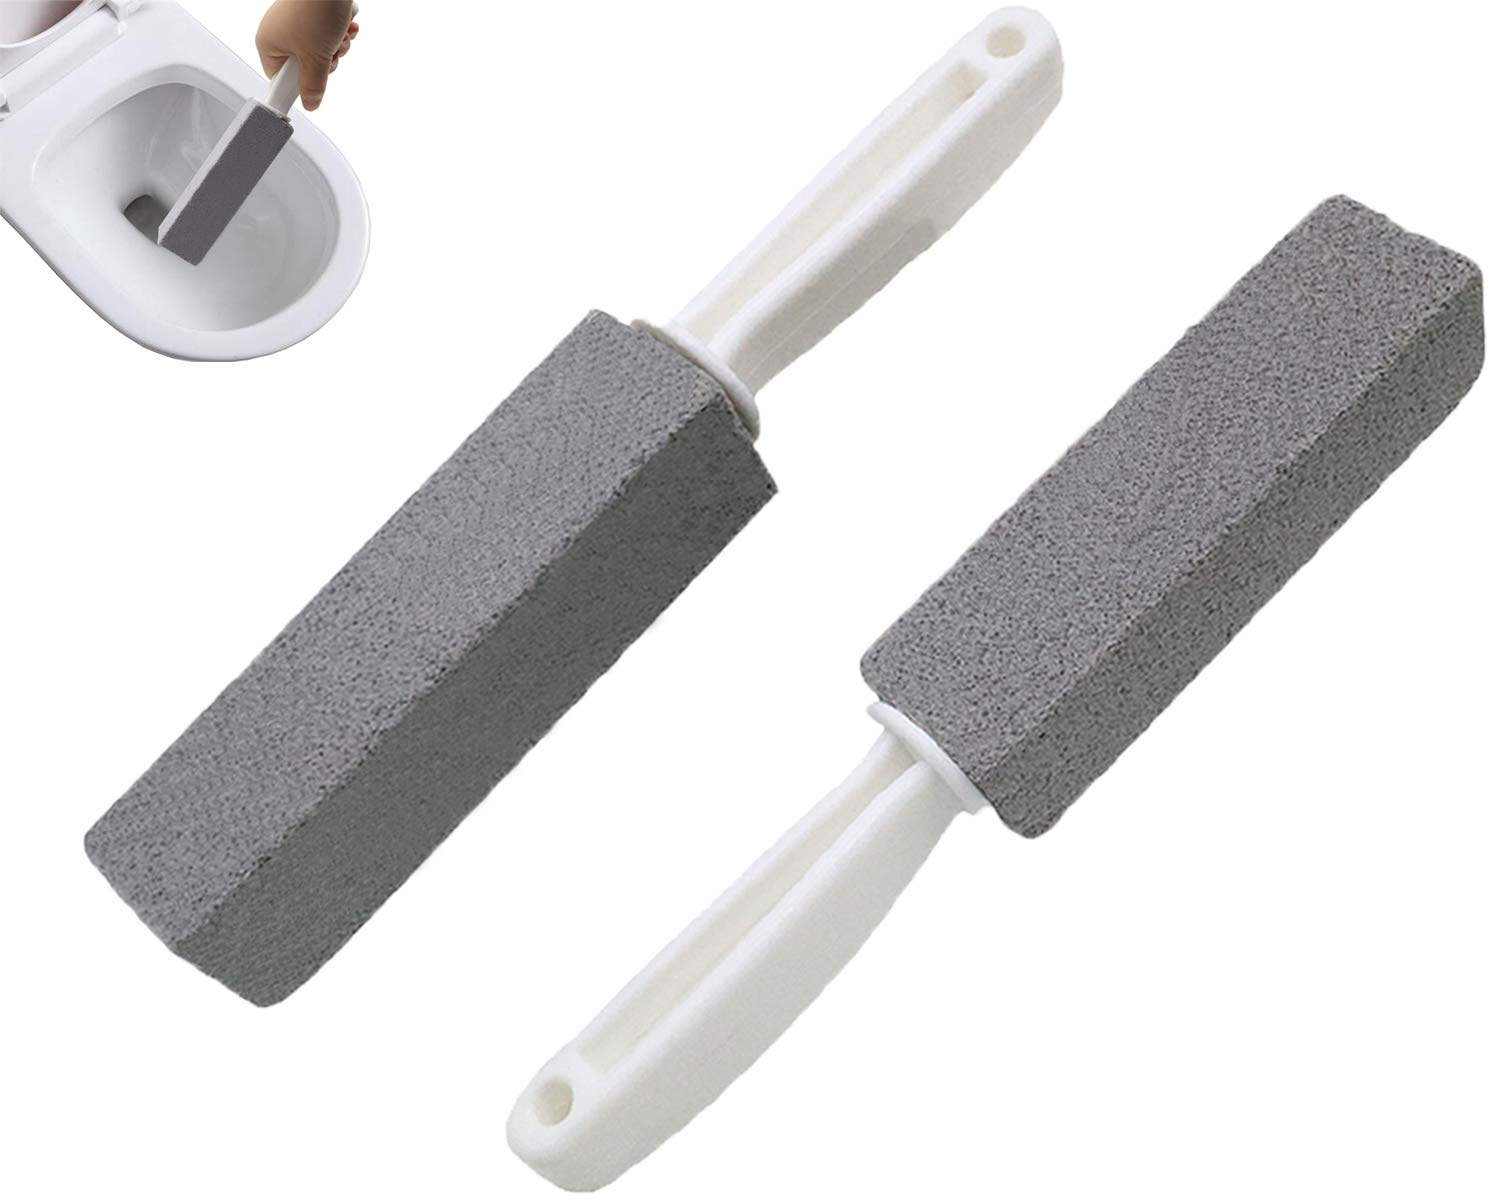 Comfun Toilet Bowl Pumice Cleaning Stone with Handle Stains and Hard Water Ring Remover Rust Grill Griddle Cleaner for Kitchen/ Bath/ Pool/ Spa/ Household Cleaning 2 Pack